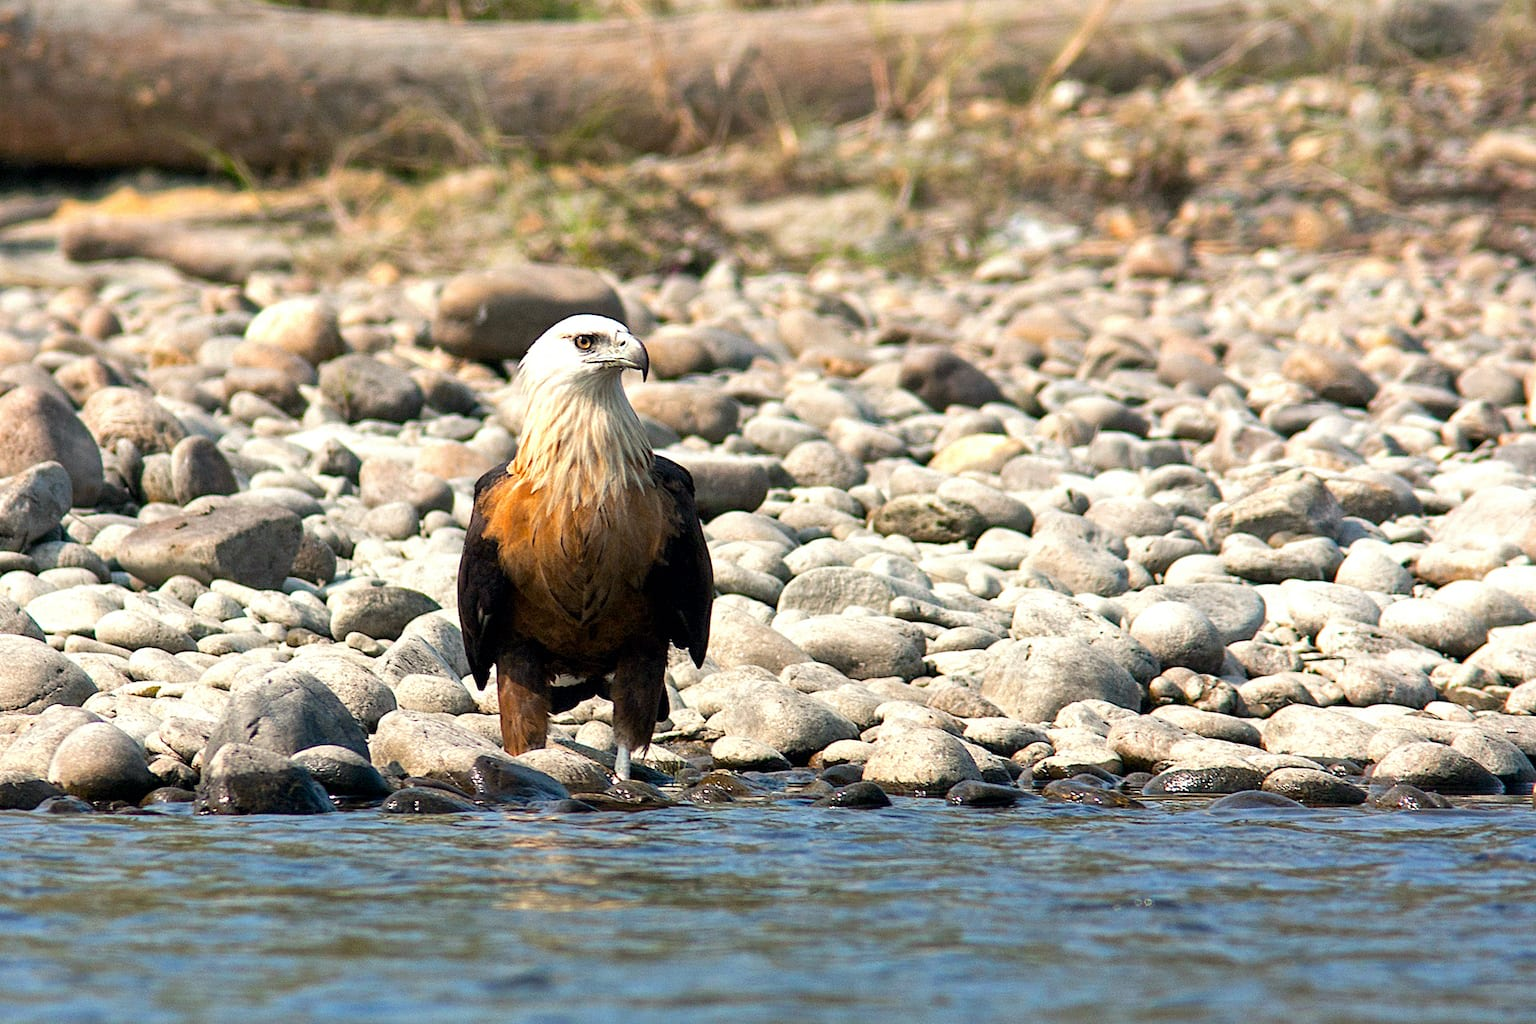 The endangered Pallas's fish-eagle (Haliaeetus leucoryphus) lives in north and northeastern India. In addition to the fish it picks off the water's surface, this mighty eagle hunts waterbirds like geese, ducks, coots, and demoiselle cranes, as well as young ibises, openbills, darters and terns from heronries and nesting sites. This is a heavyweight lifter of the avian world and has been recorded flying and carrying adult greylag geese and huge carp fish twice its weight. Like other fish-eagles, birds mate for life and build on the same nest over multiple years. Their nests sometimes get so big that they tower over the eagles.